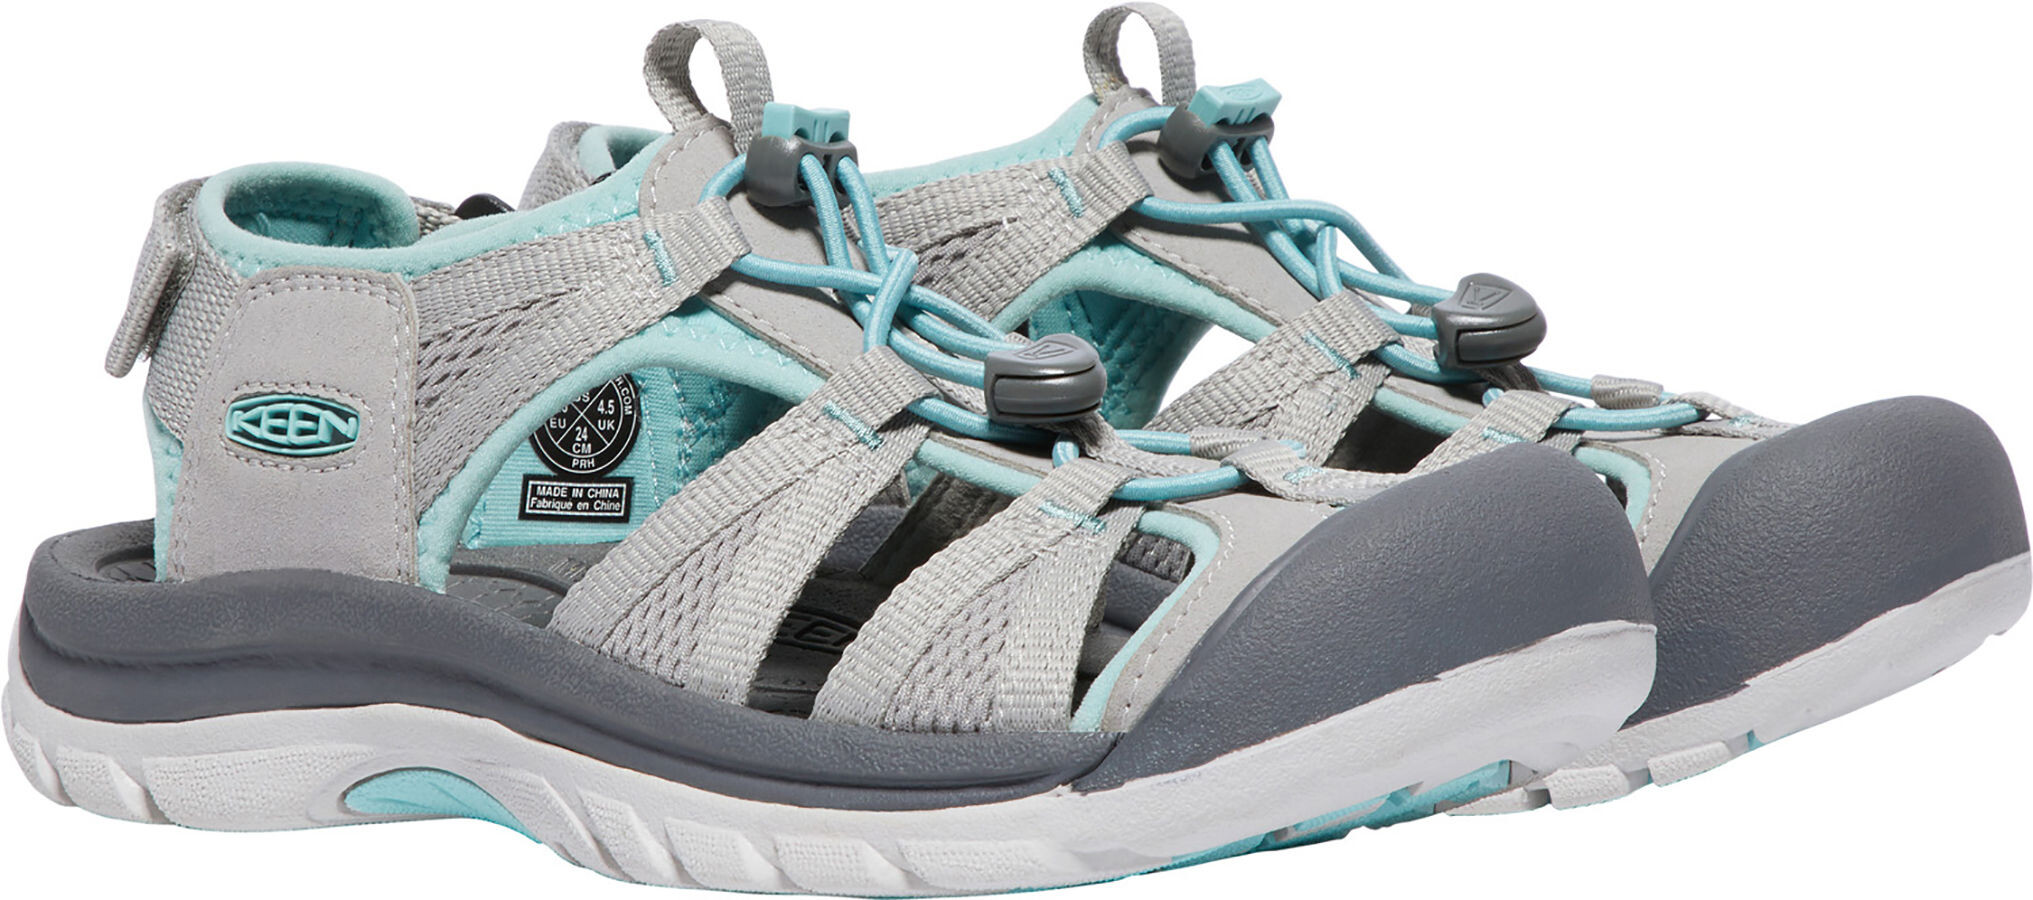 3a7b342890e Keen Venice II H2 Sandals Women Paloma/Pastel Turquoise | campz.at